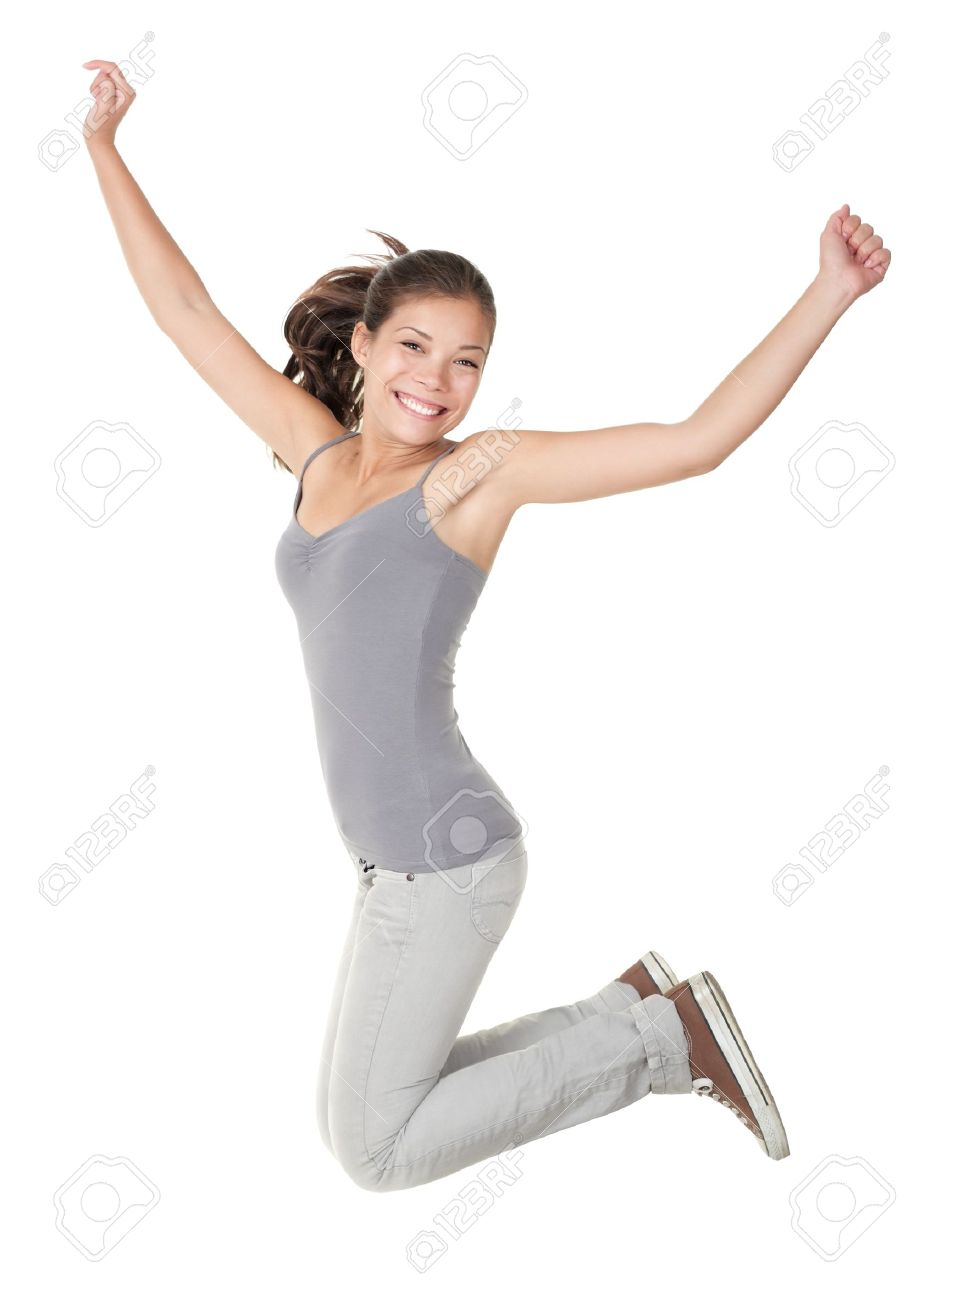 Jumping people isolated on white background: casual woman jumping happy and free in full body. Beautiful Caucasian Asian model smiling. Stock Photo - 8828794